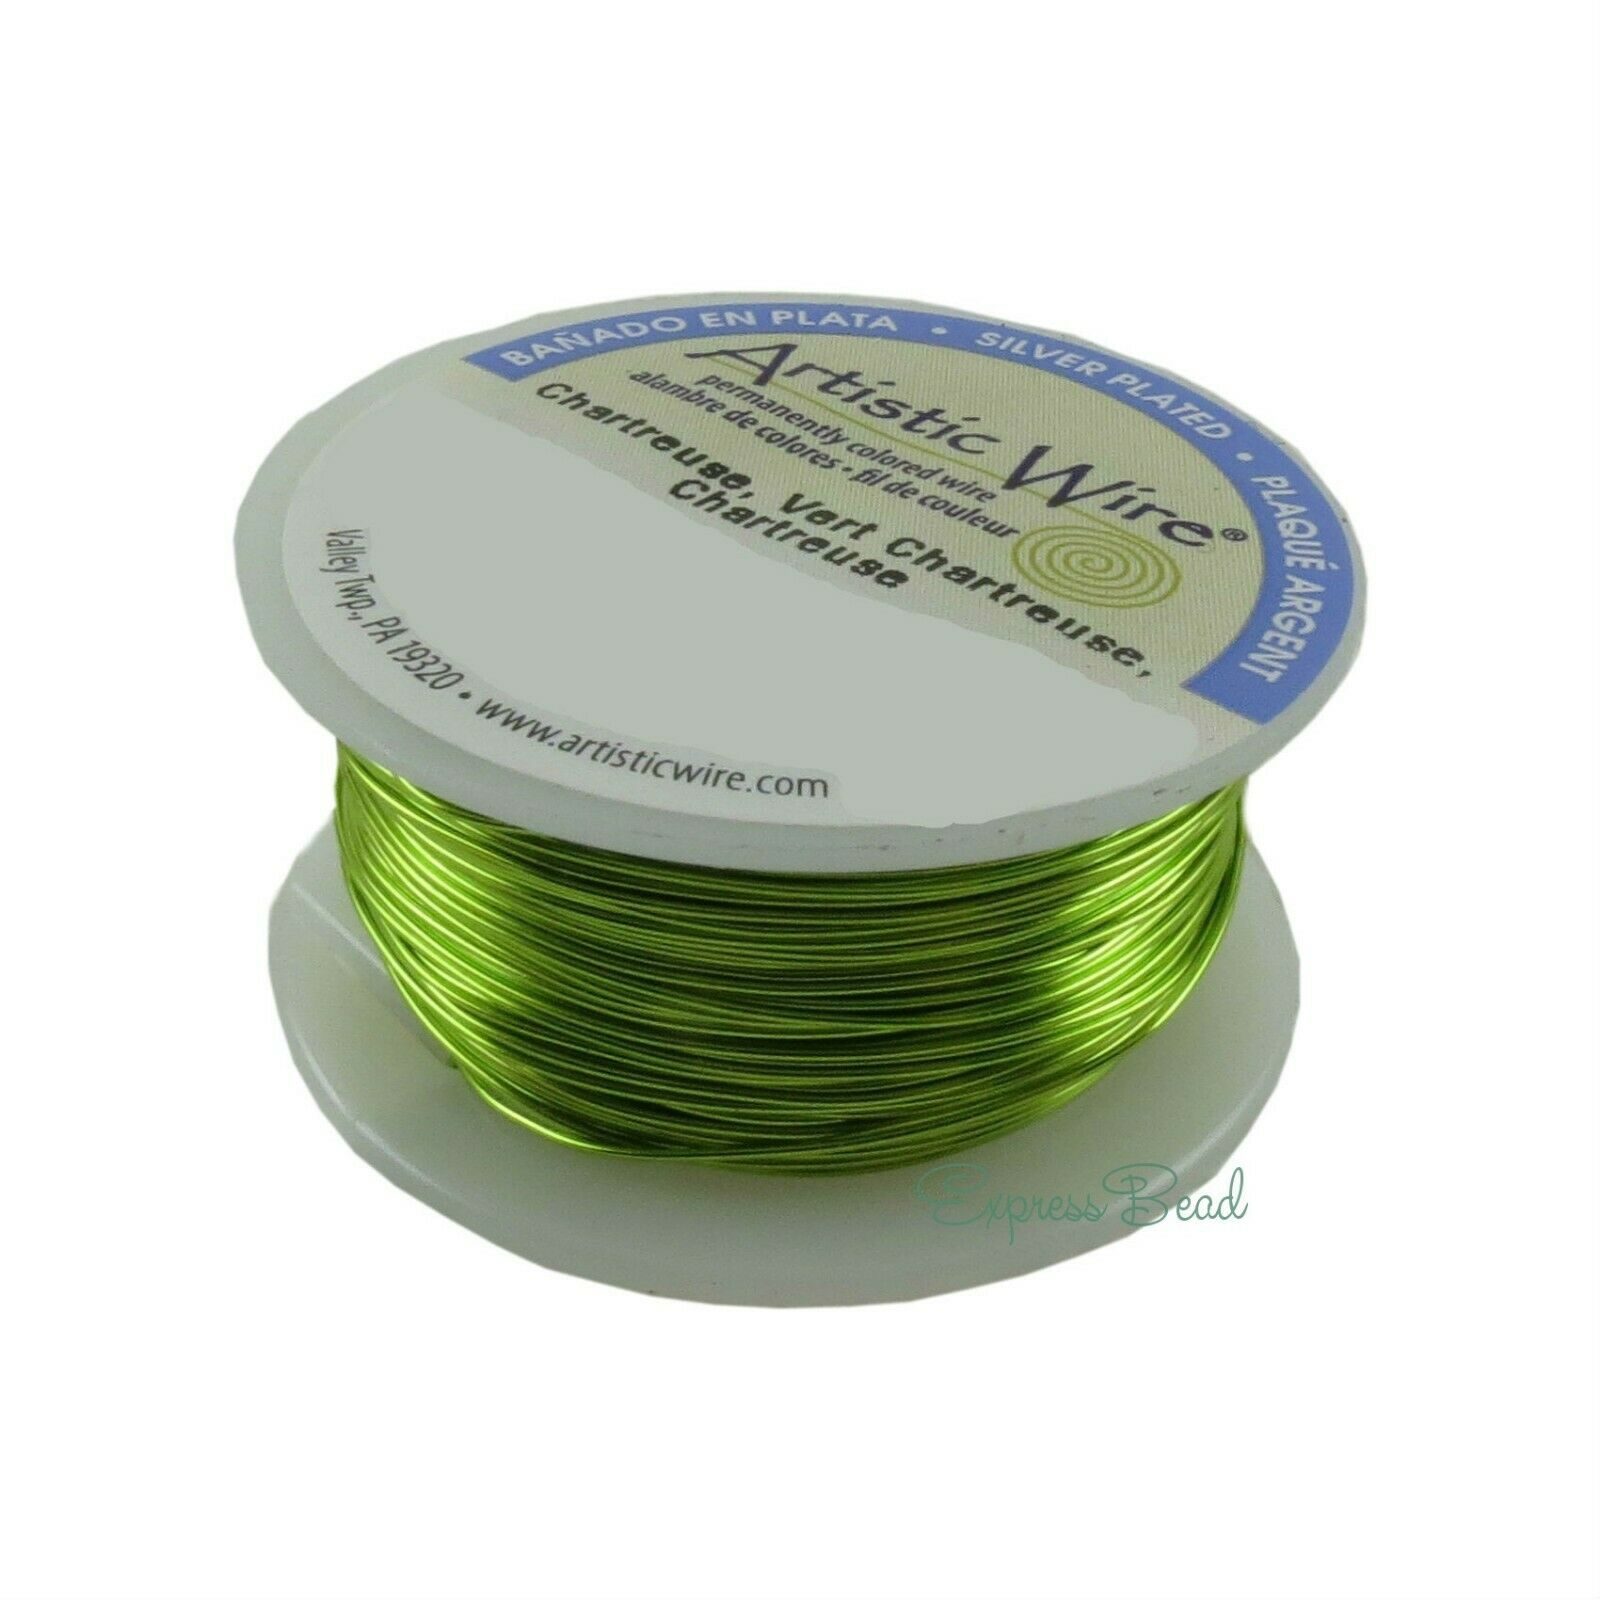 Wire 26-28GA Chartreuse Green Silver Plated Tarnish-Resistant Artistic Wire